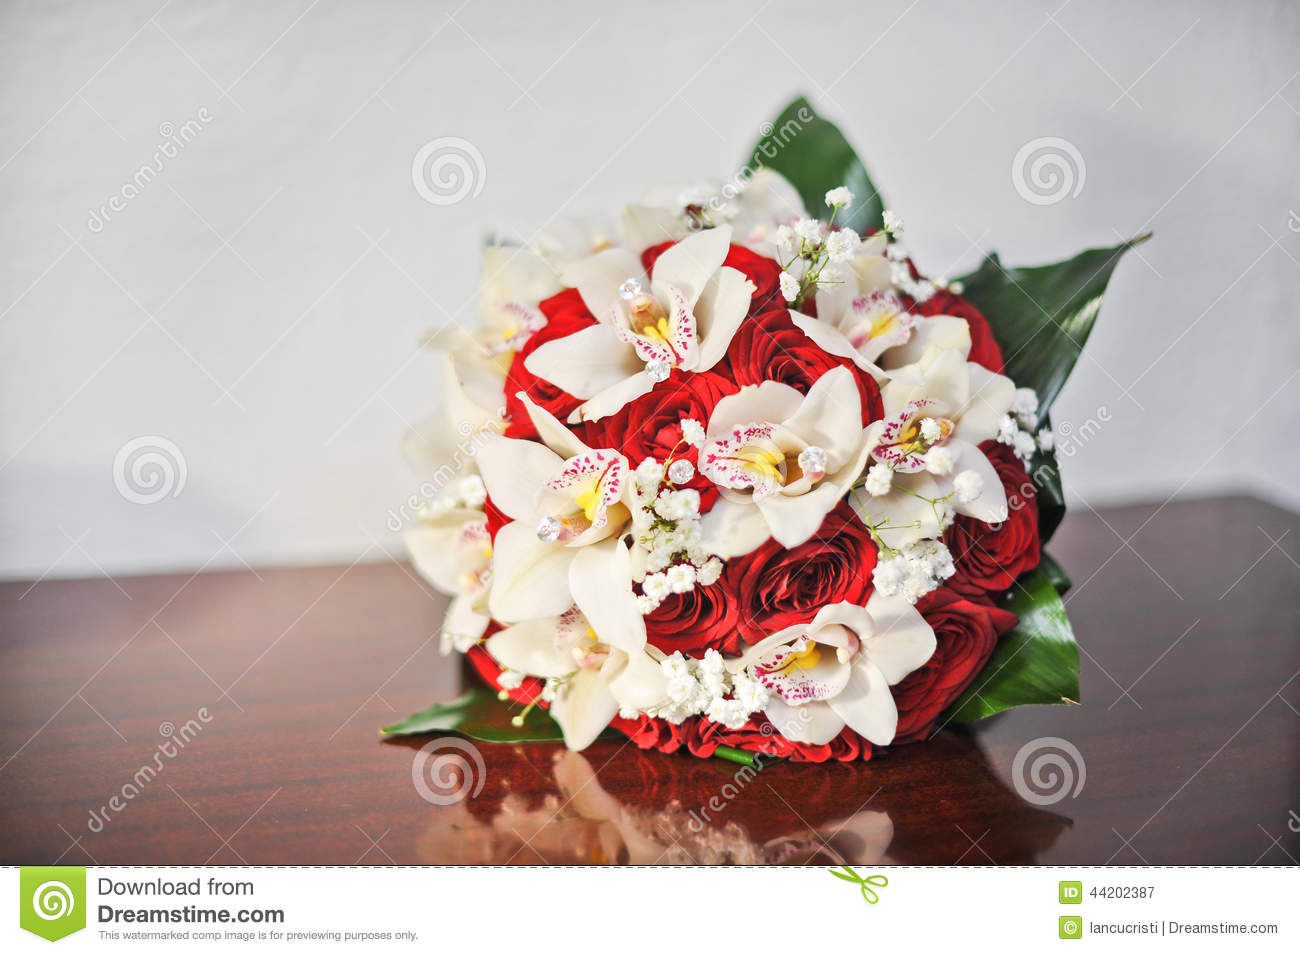 red roses on table royalty free stock image. Black Bedroom Furniture Sets. Home Design Ideas